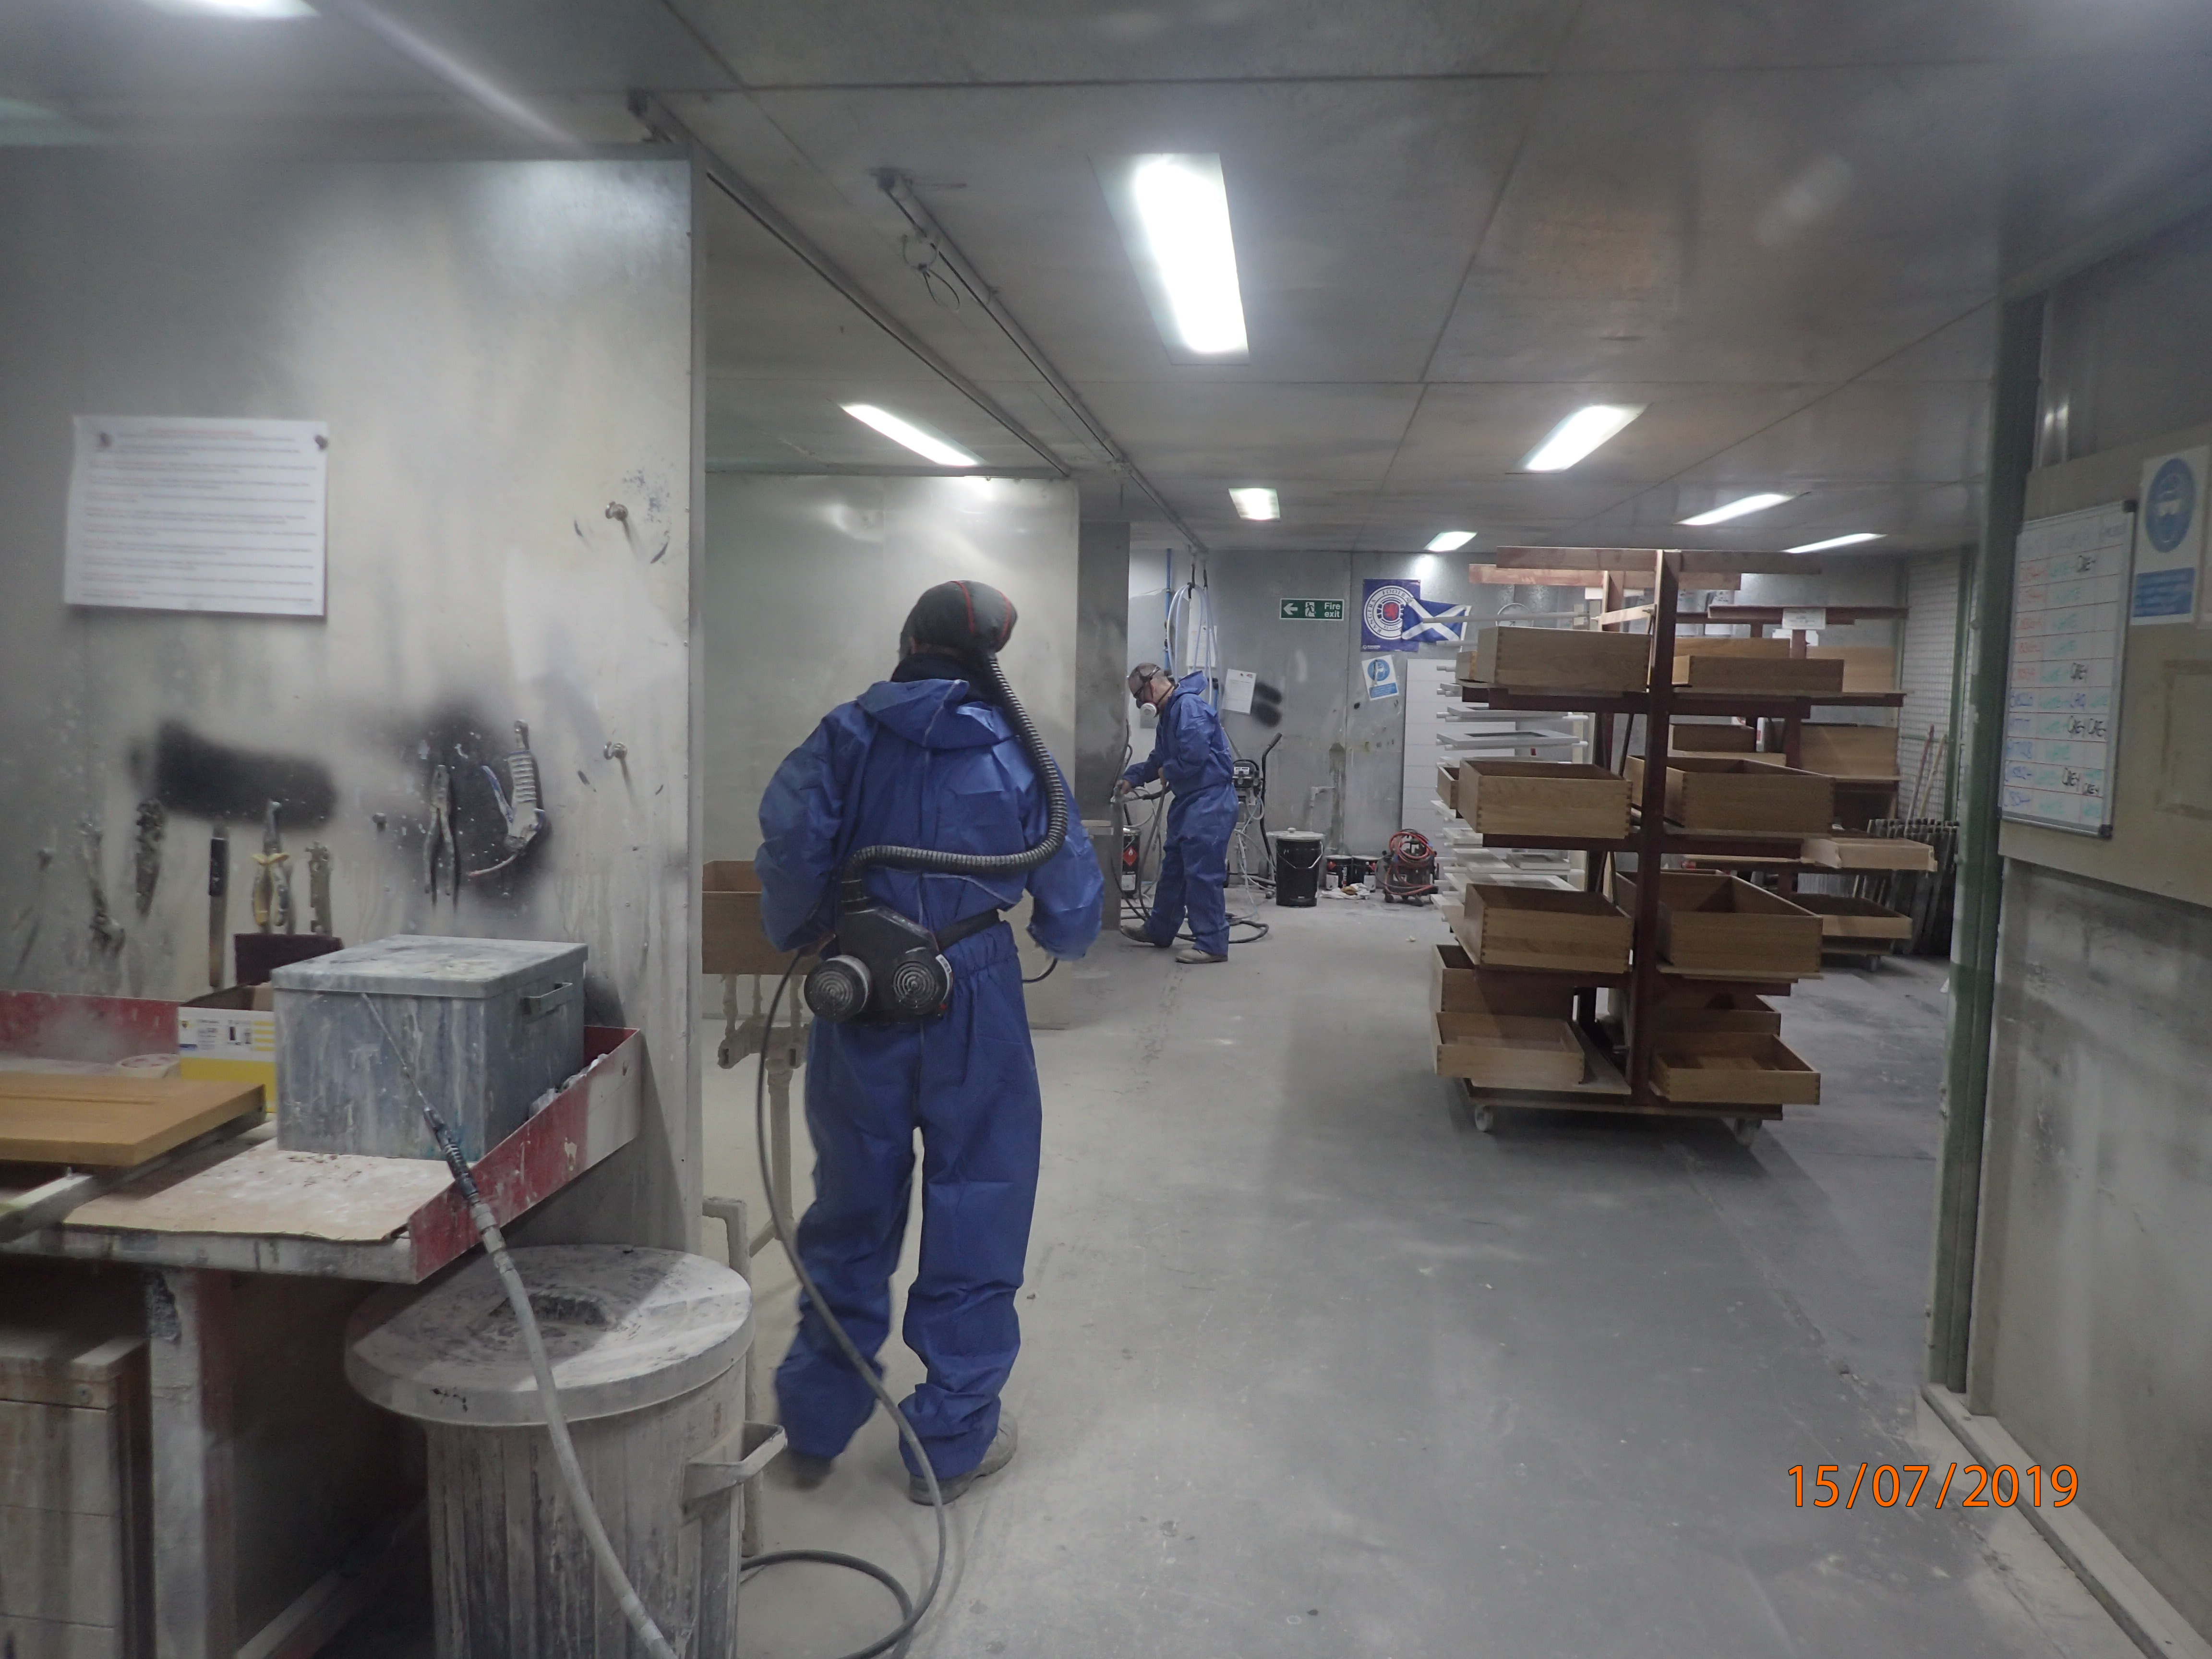 Paint Shop Invests in AIRQUAL-1 to Save Money on Compressed Air Testing